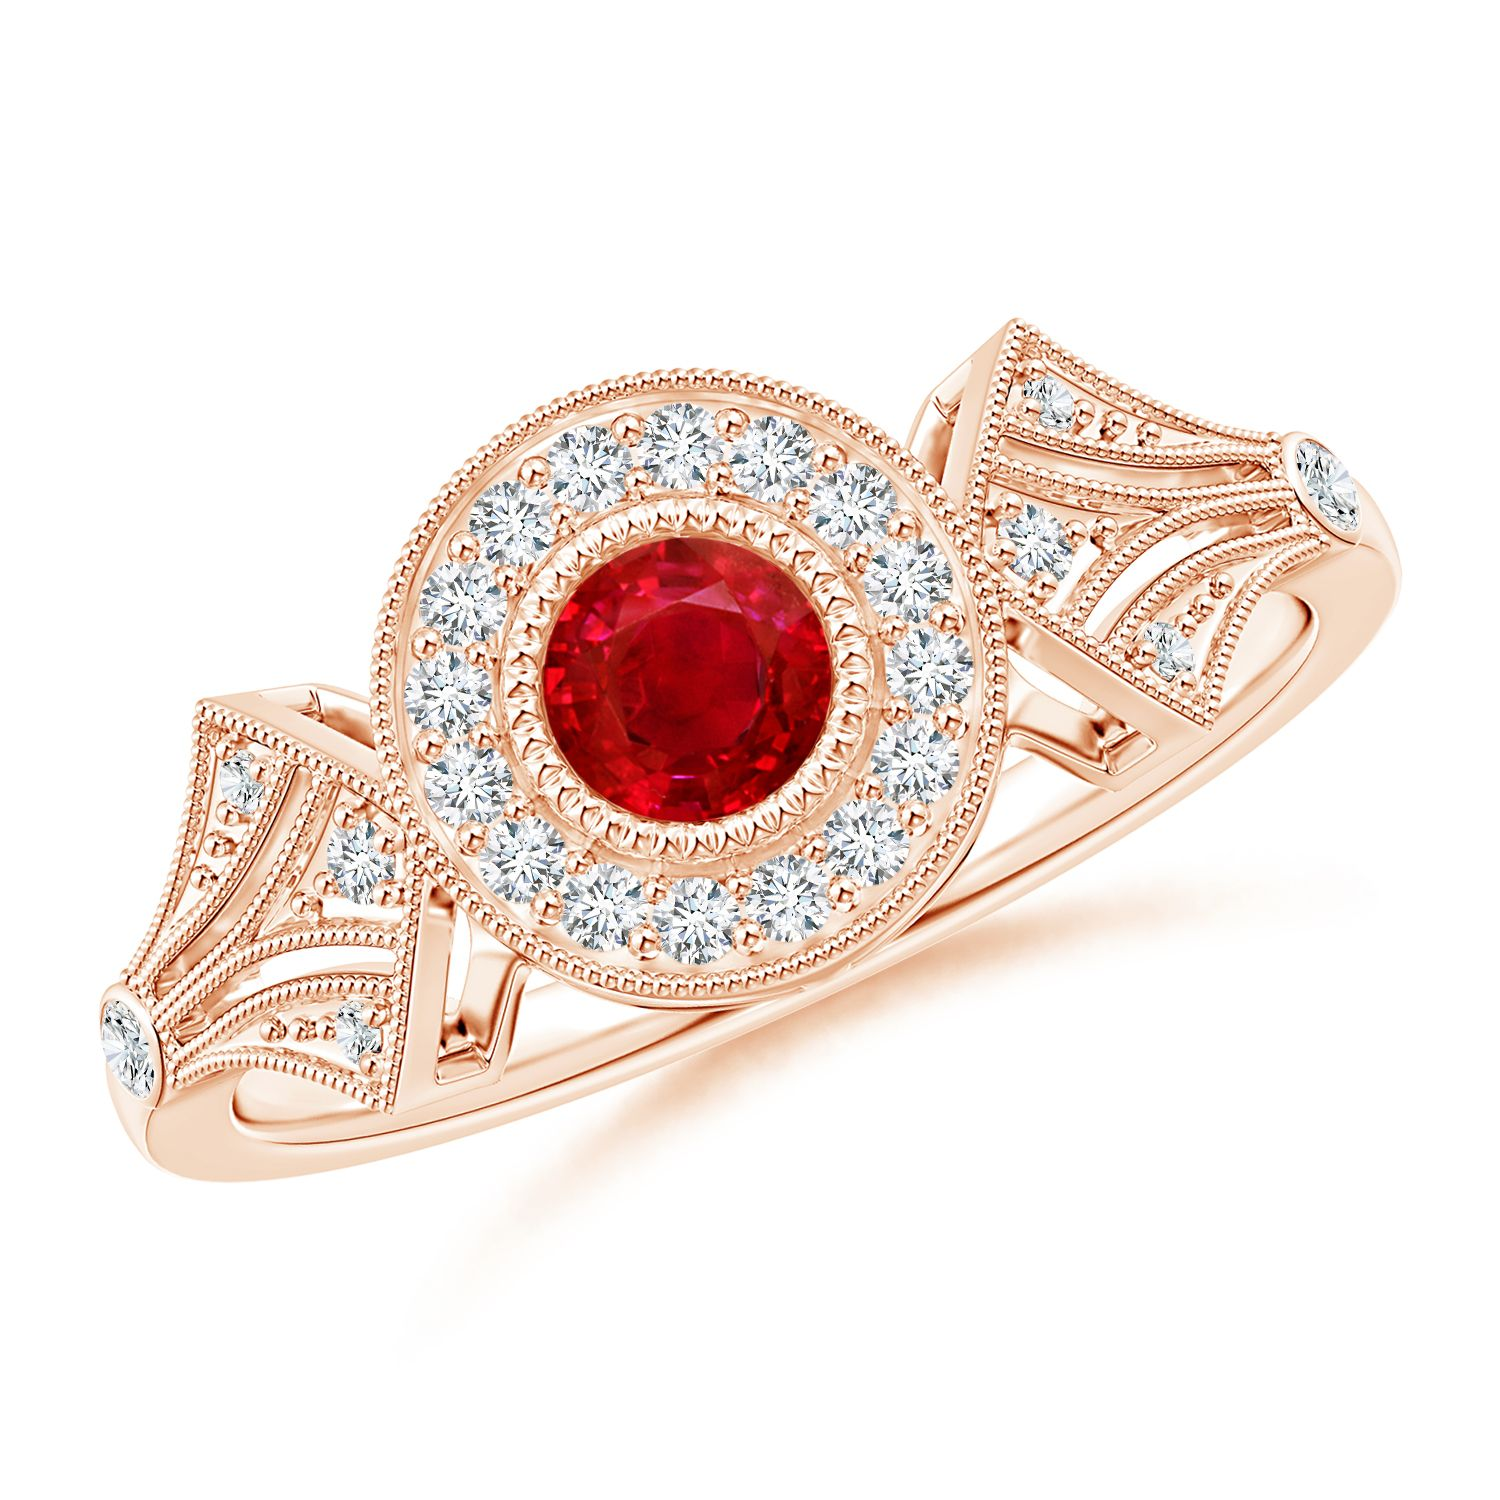 Angara Round Ruby Halo Ring with Cushion Milgrain Detailing 2qtrpP0LO